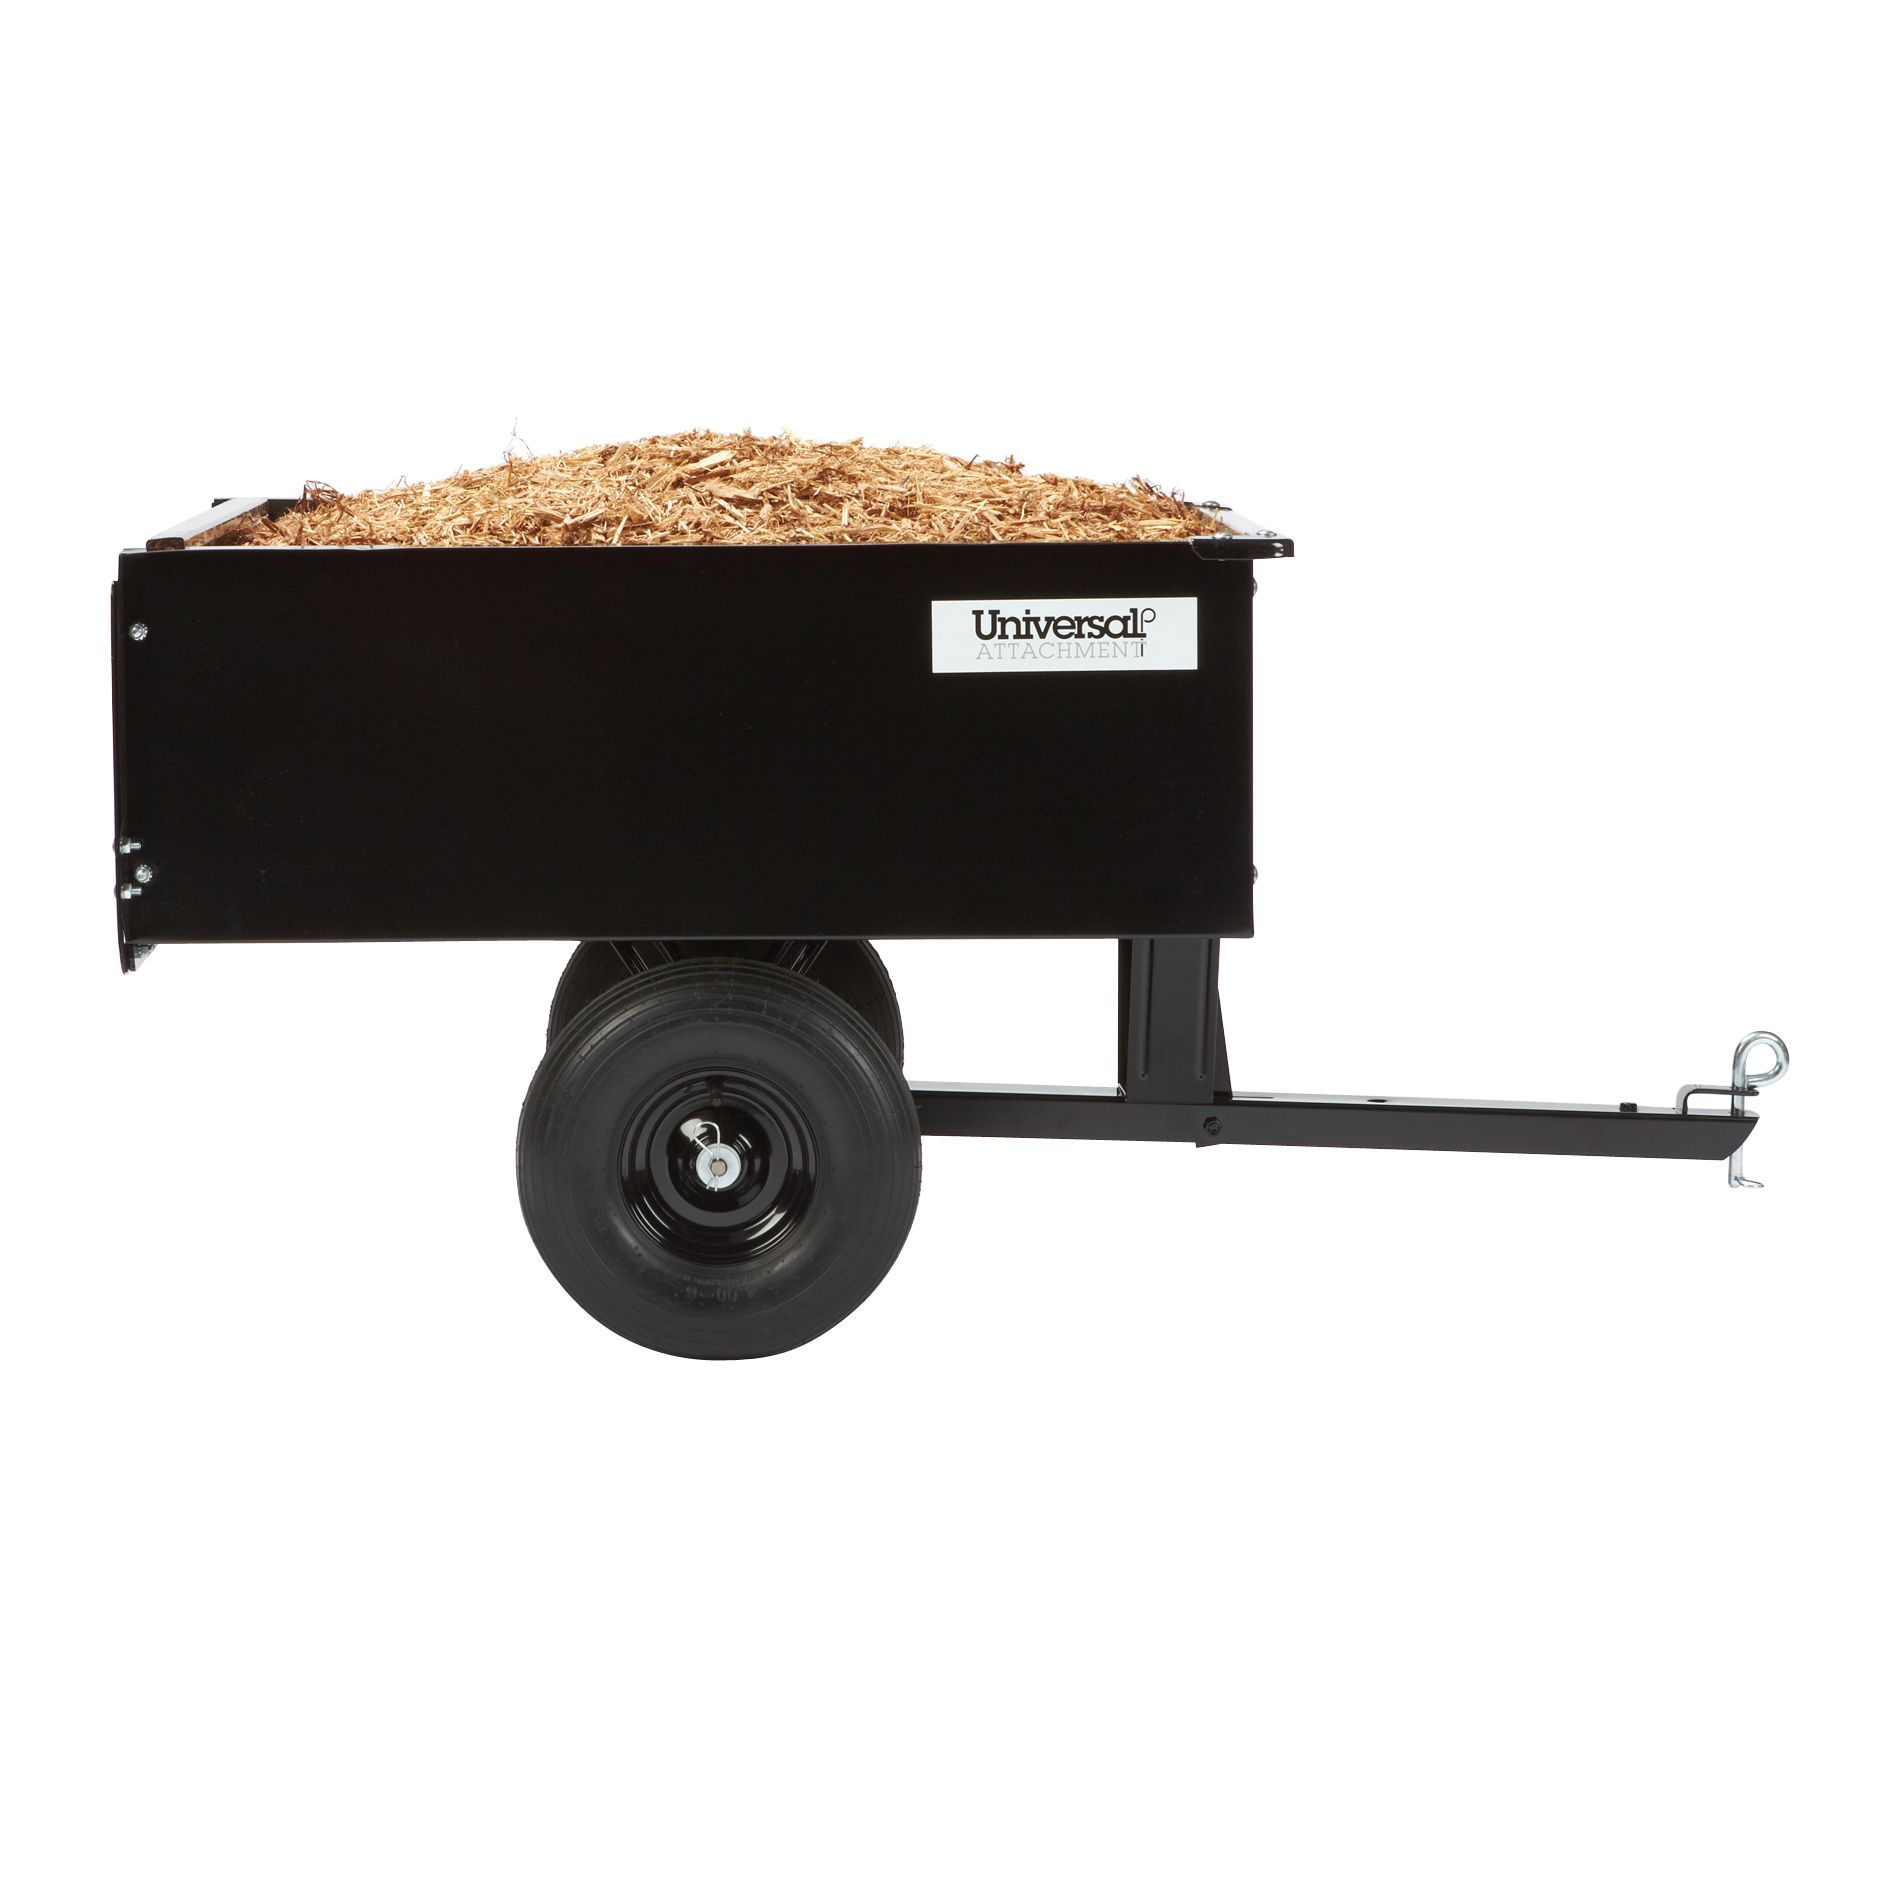 Universal  9 cu. ft. Steel Dump Cart